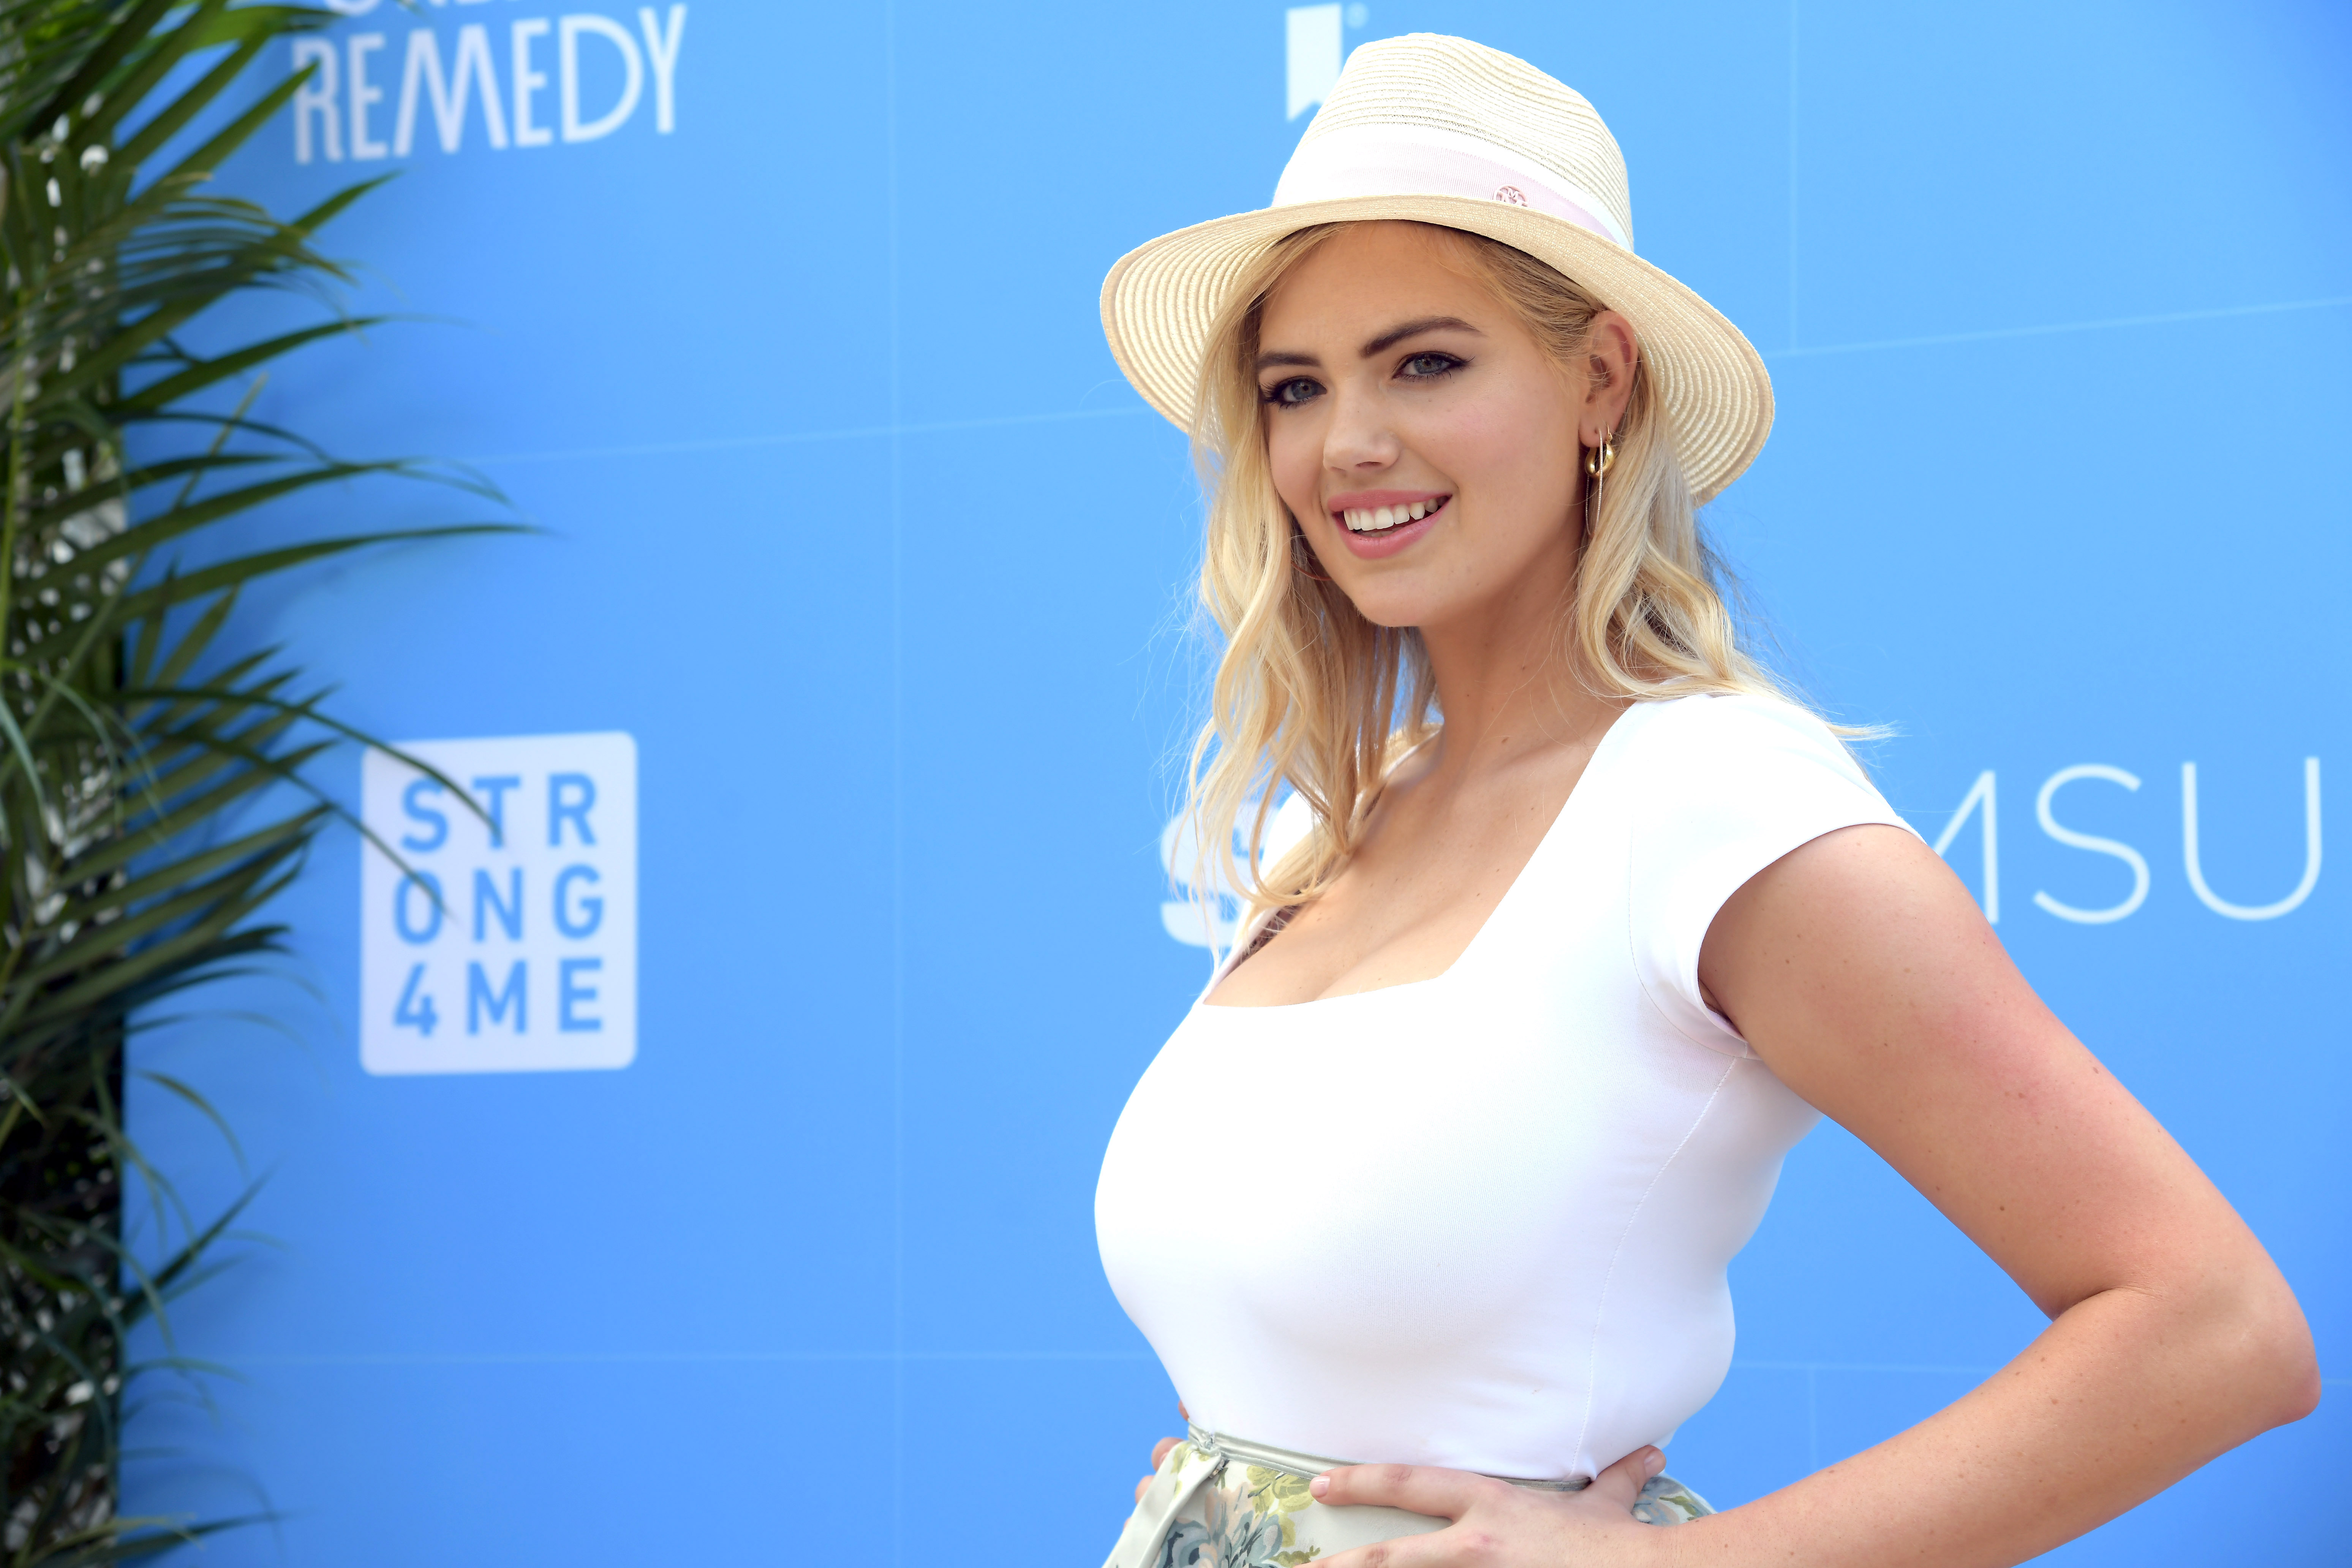 Kate Upton Wows In Unretouched Health Magazine Cover Calls It A Step Toward Embracing Real Life Etcanada Com